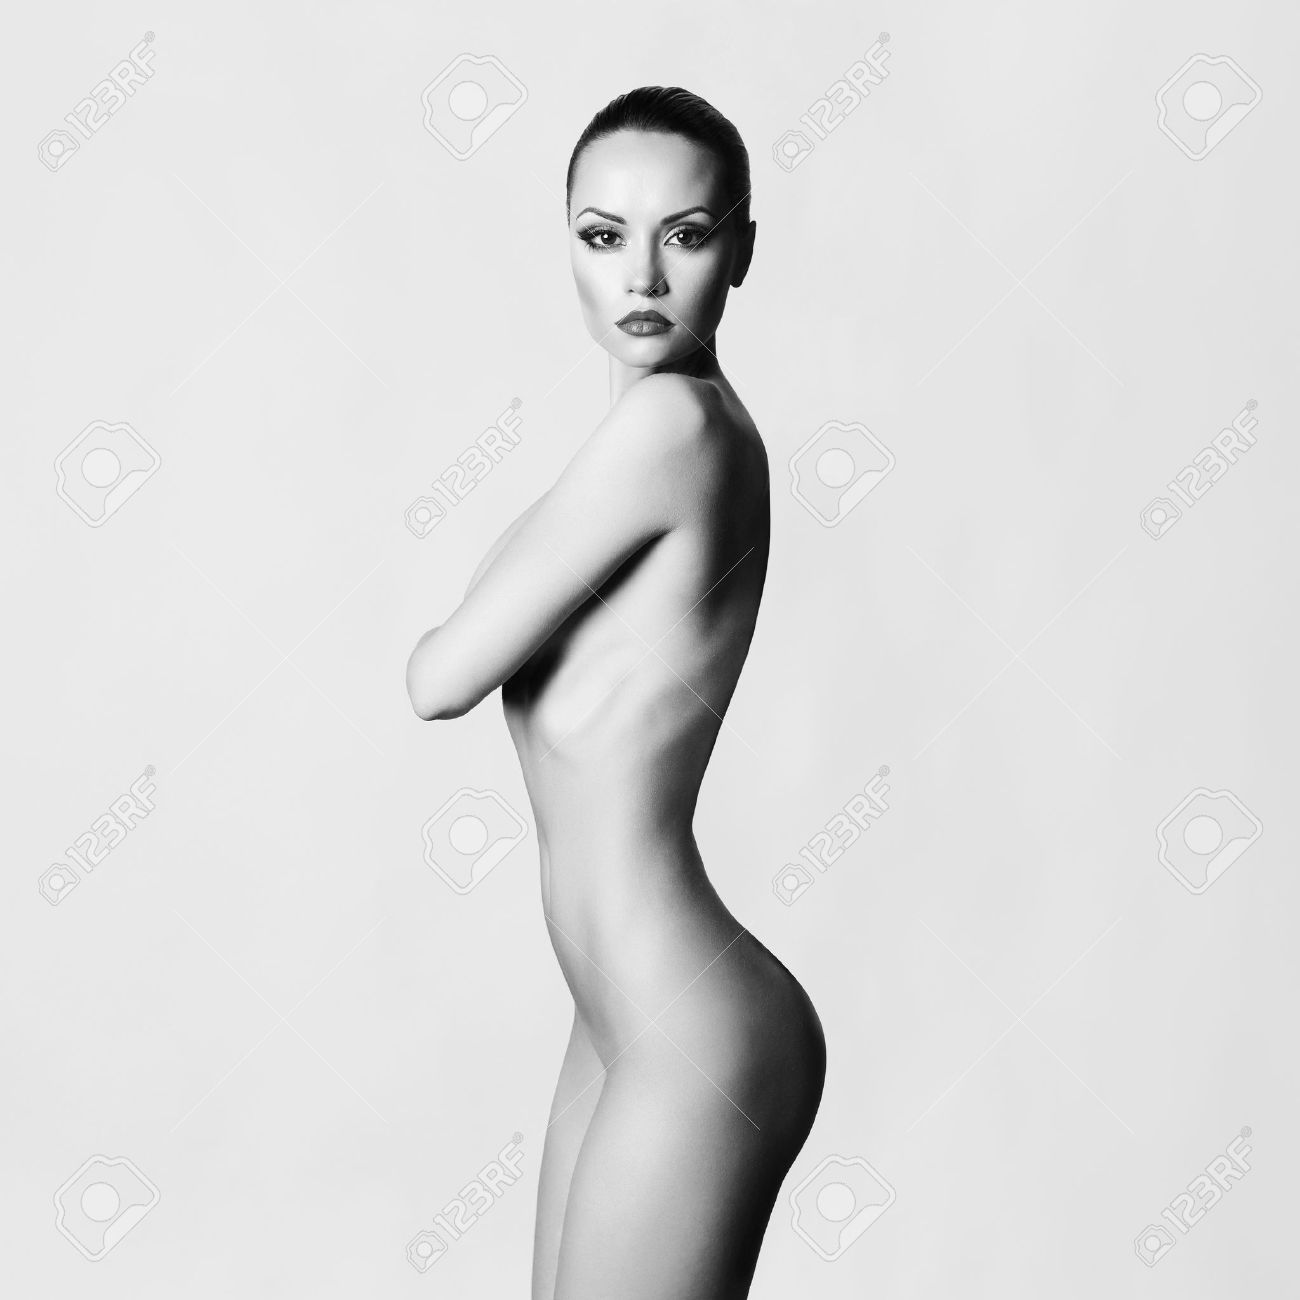 Studio fashion photo of elegant naked lady Standard-Bild - 33856400